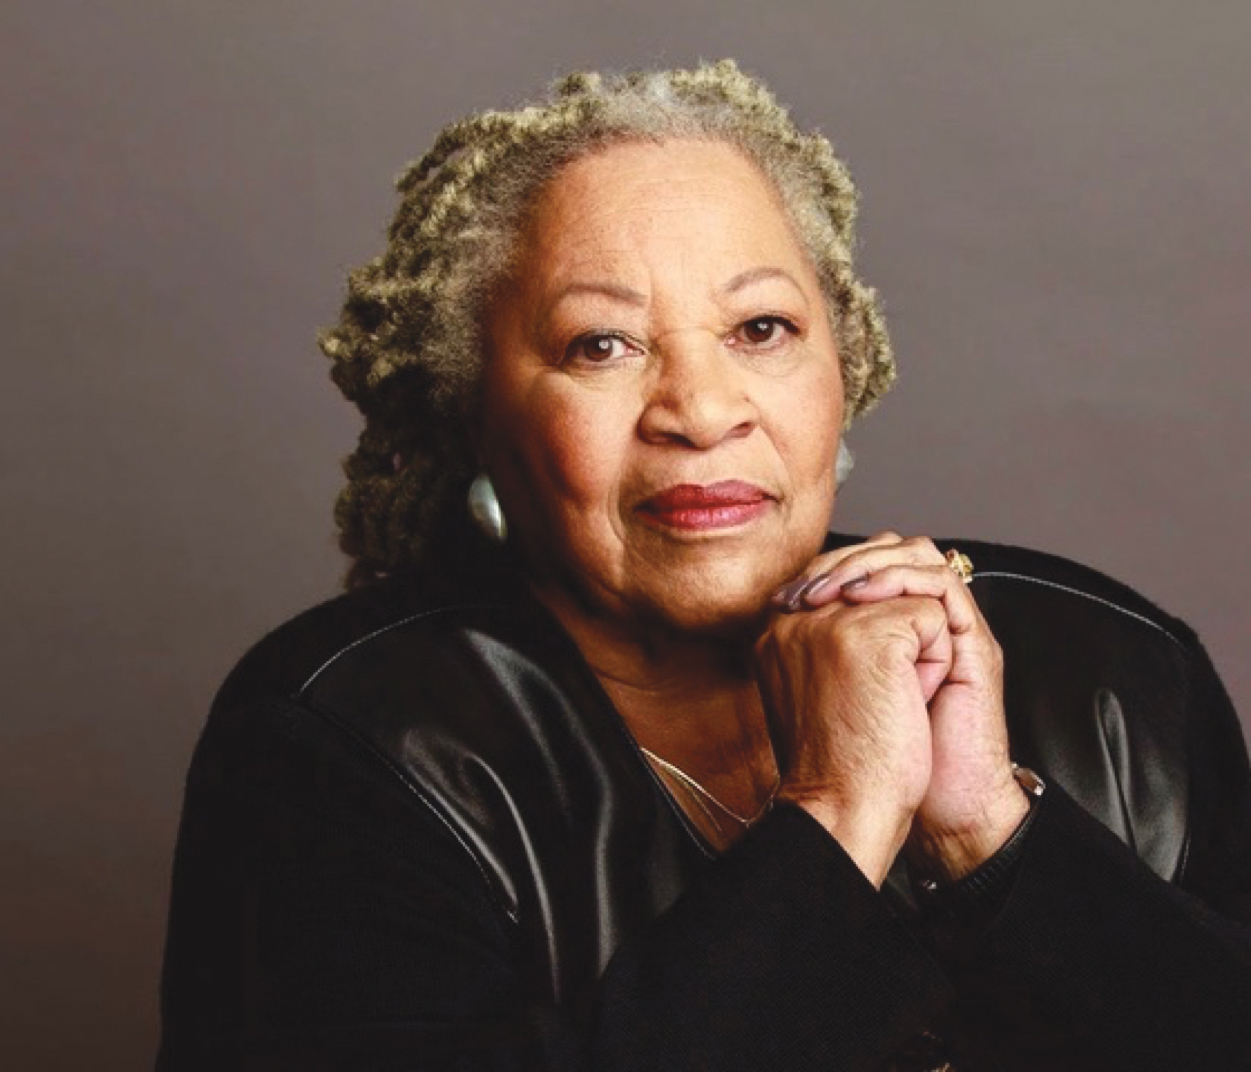 The first documentary to genuinely explore Toni Morrison's ascendance into the upper pantheon of the literary world does a nice job revealing her wonderful persona, uncovering her backstory and establishing her firm place in American history in a way her followers will appreciate, and others will admire.